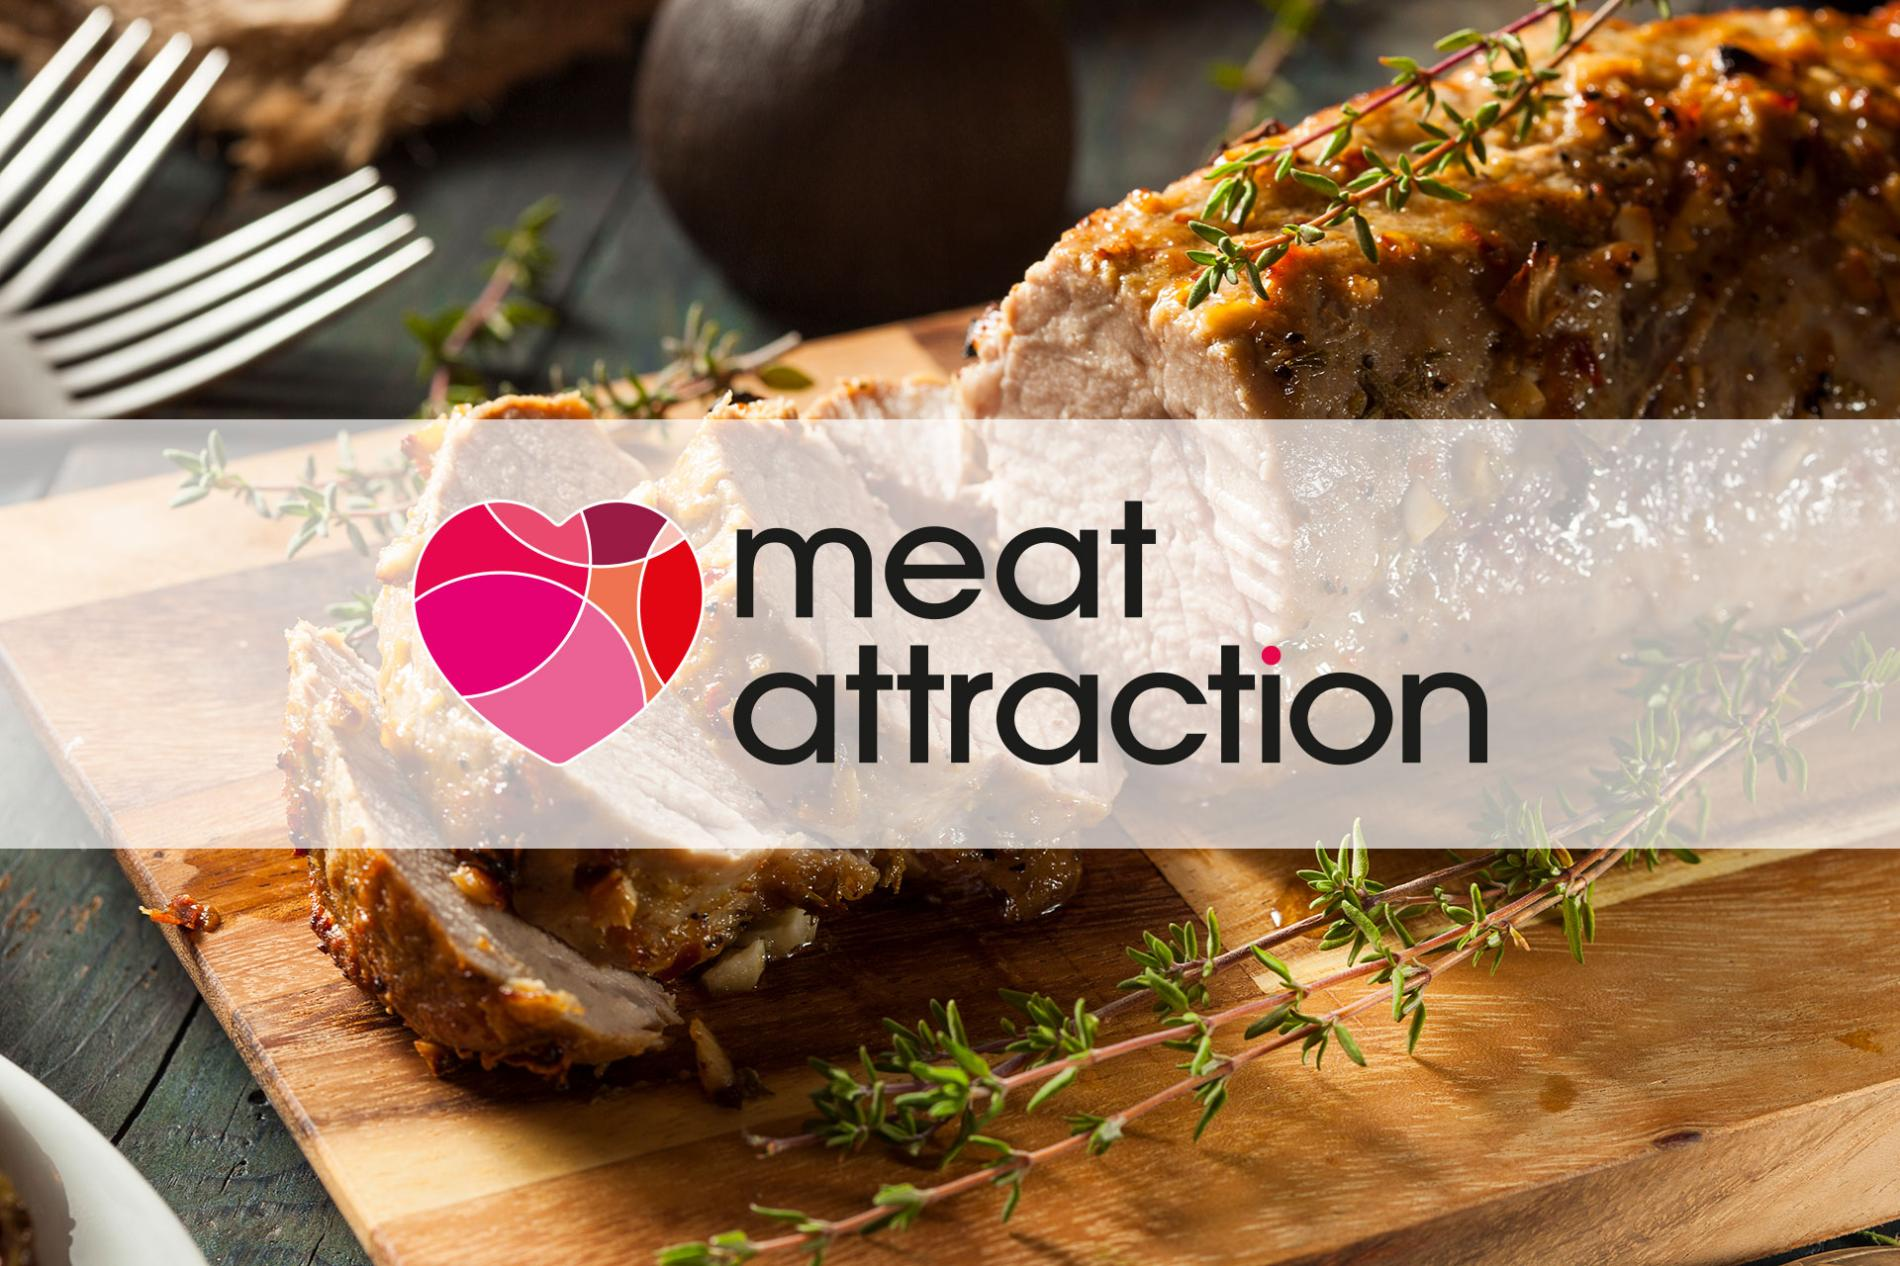 Logo de Meat Attraction sobre un plato de carne